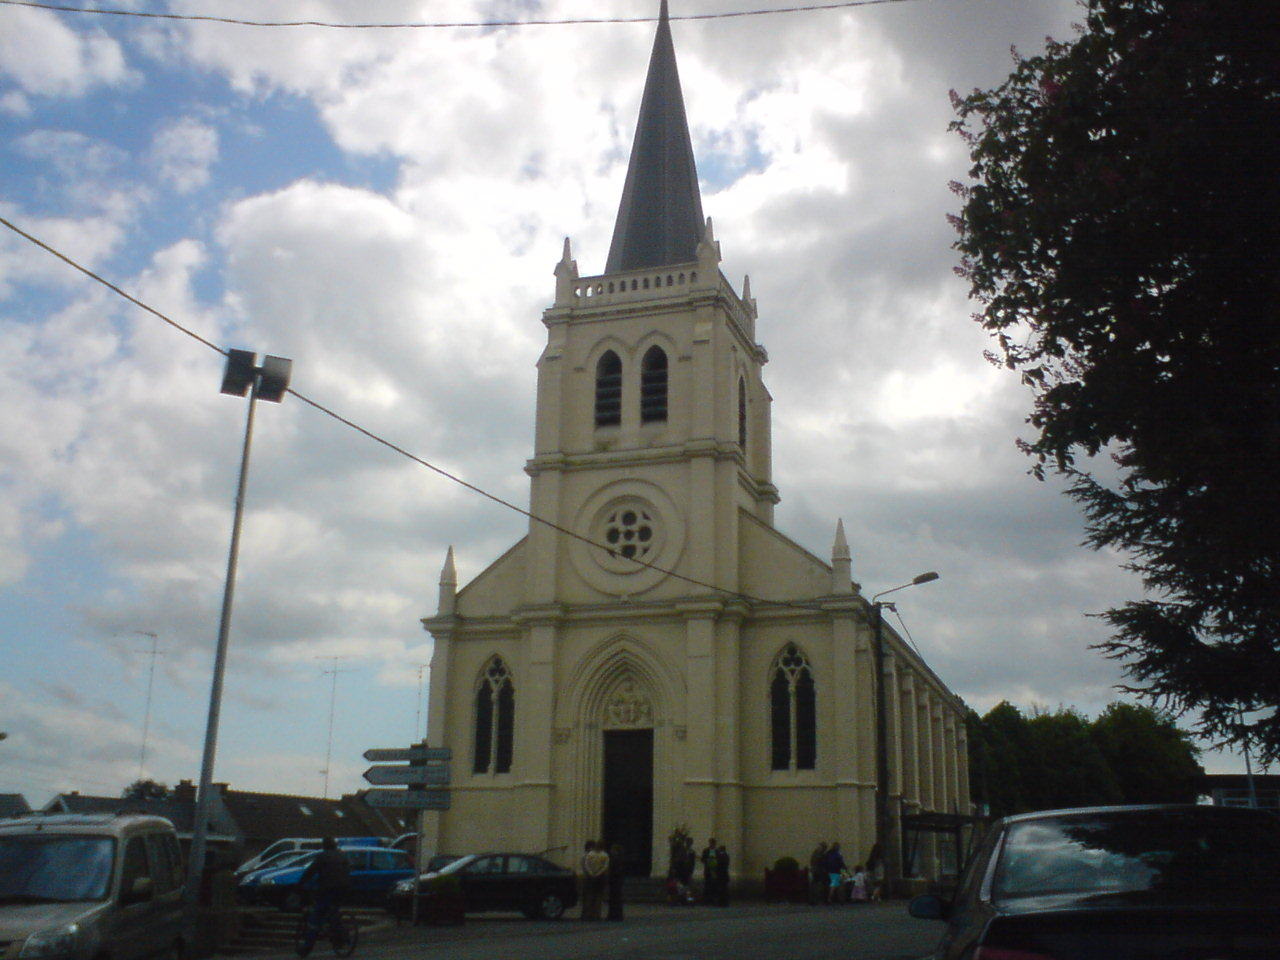 Eglise-Trith-St-Leger-3